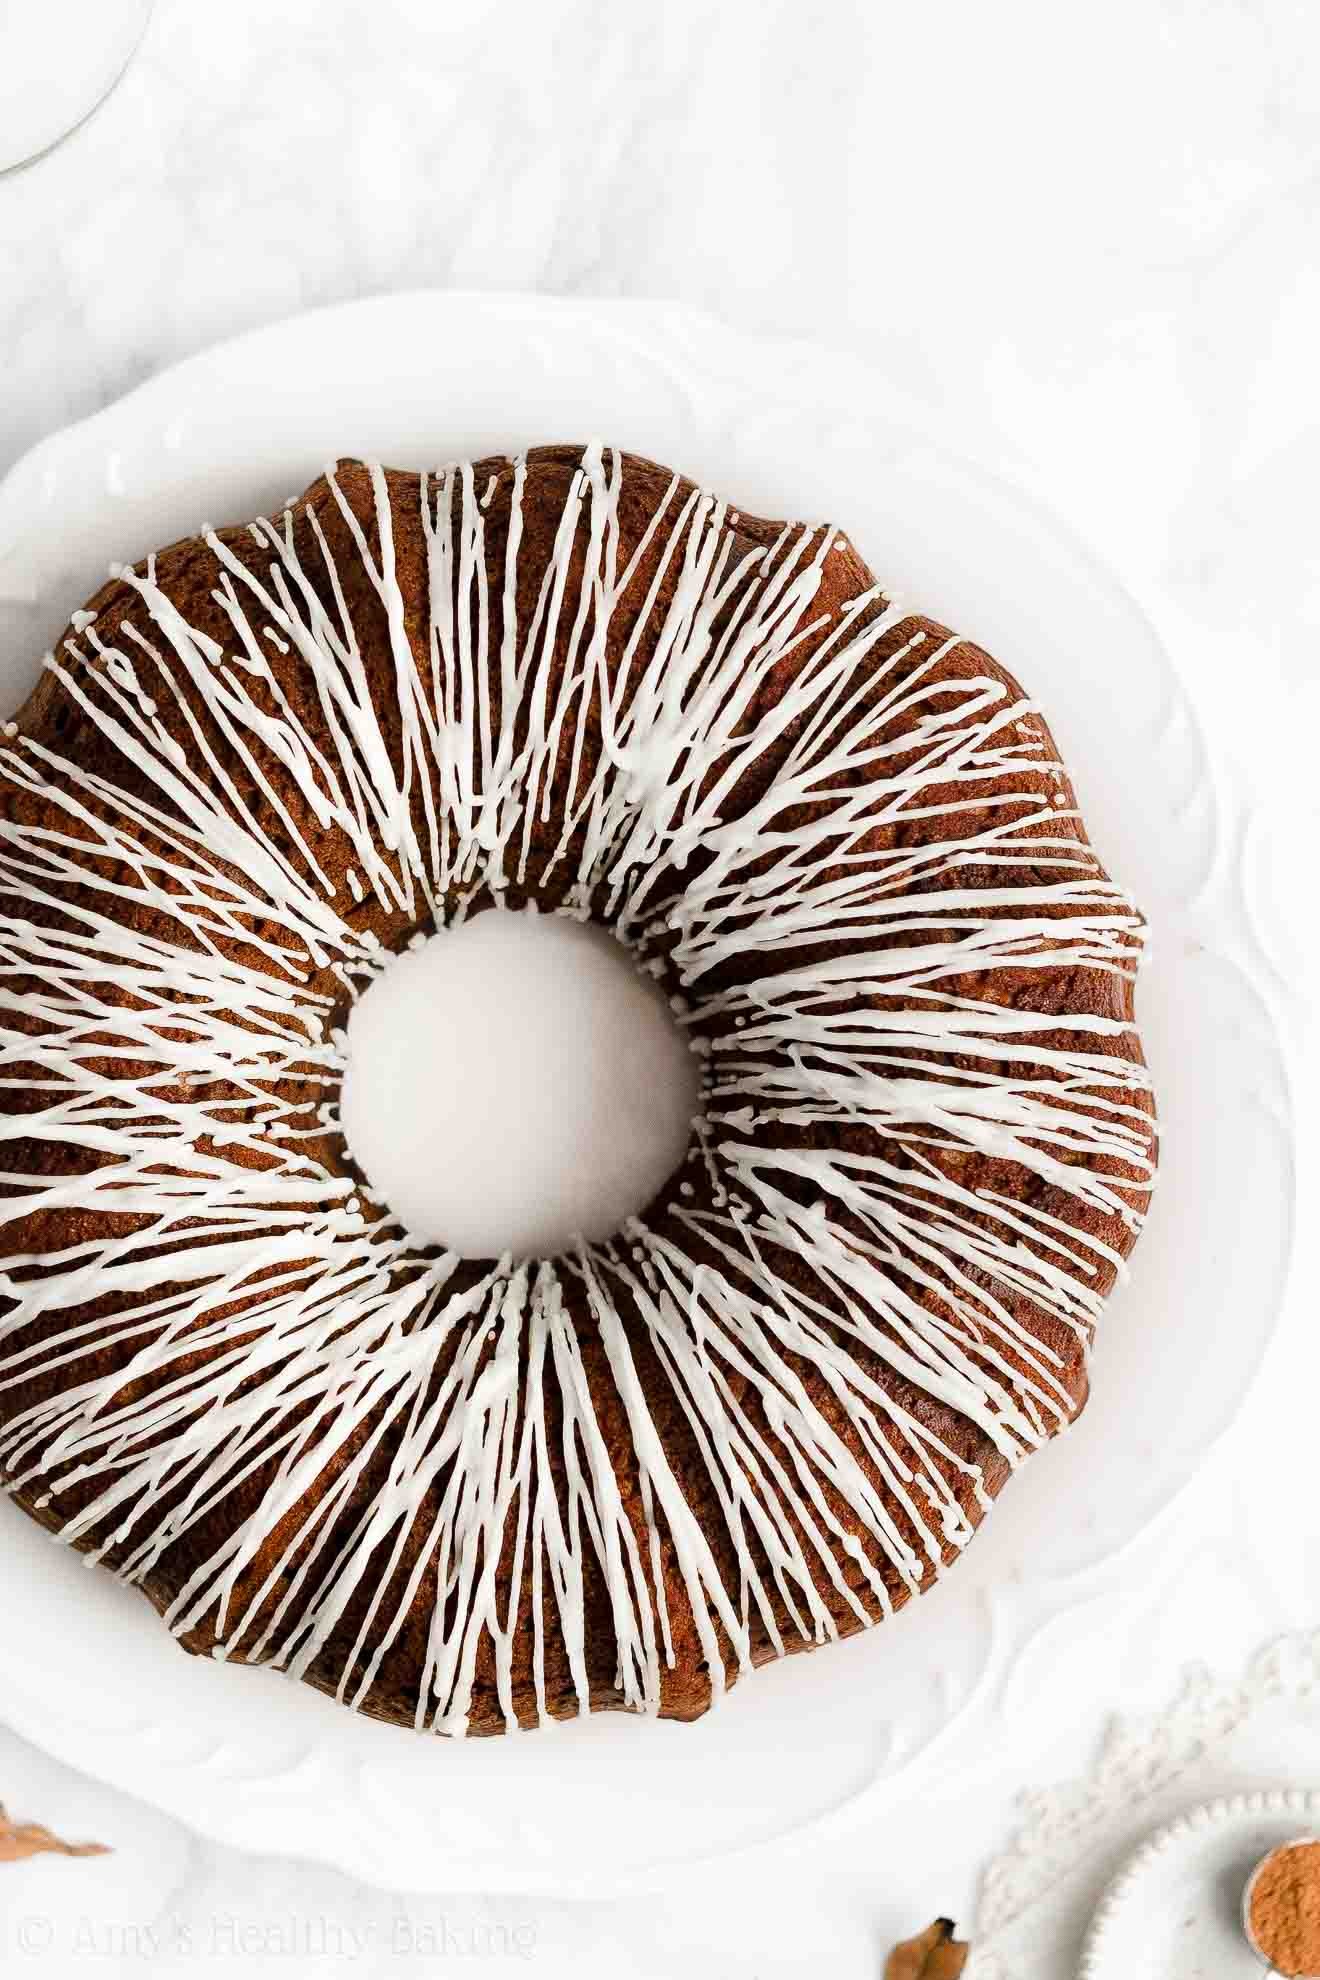 Ultimate Healthy Weight Watchers Gingerbread Bundt Cake with Glaze